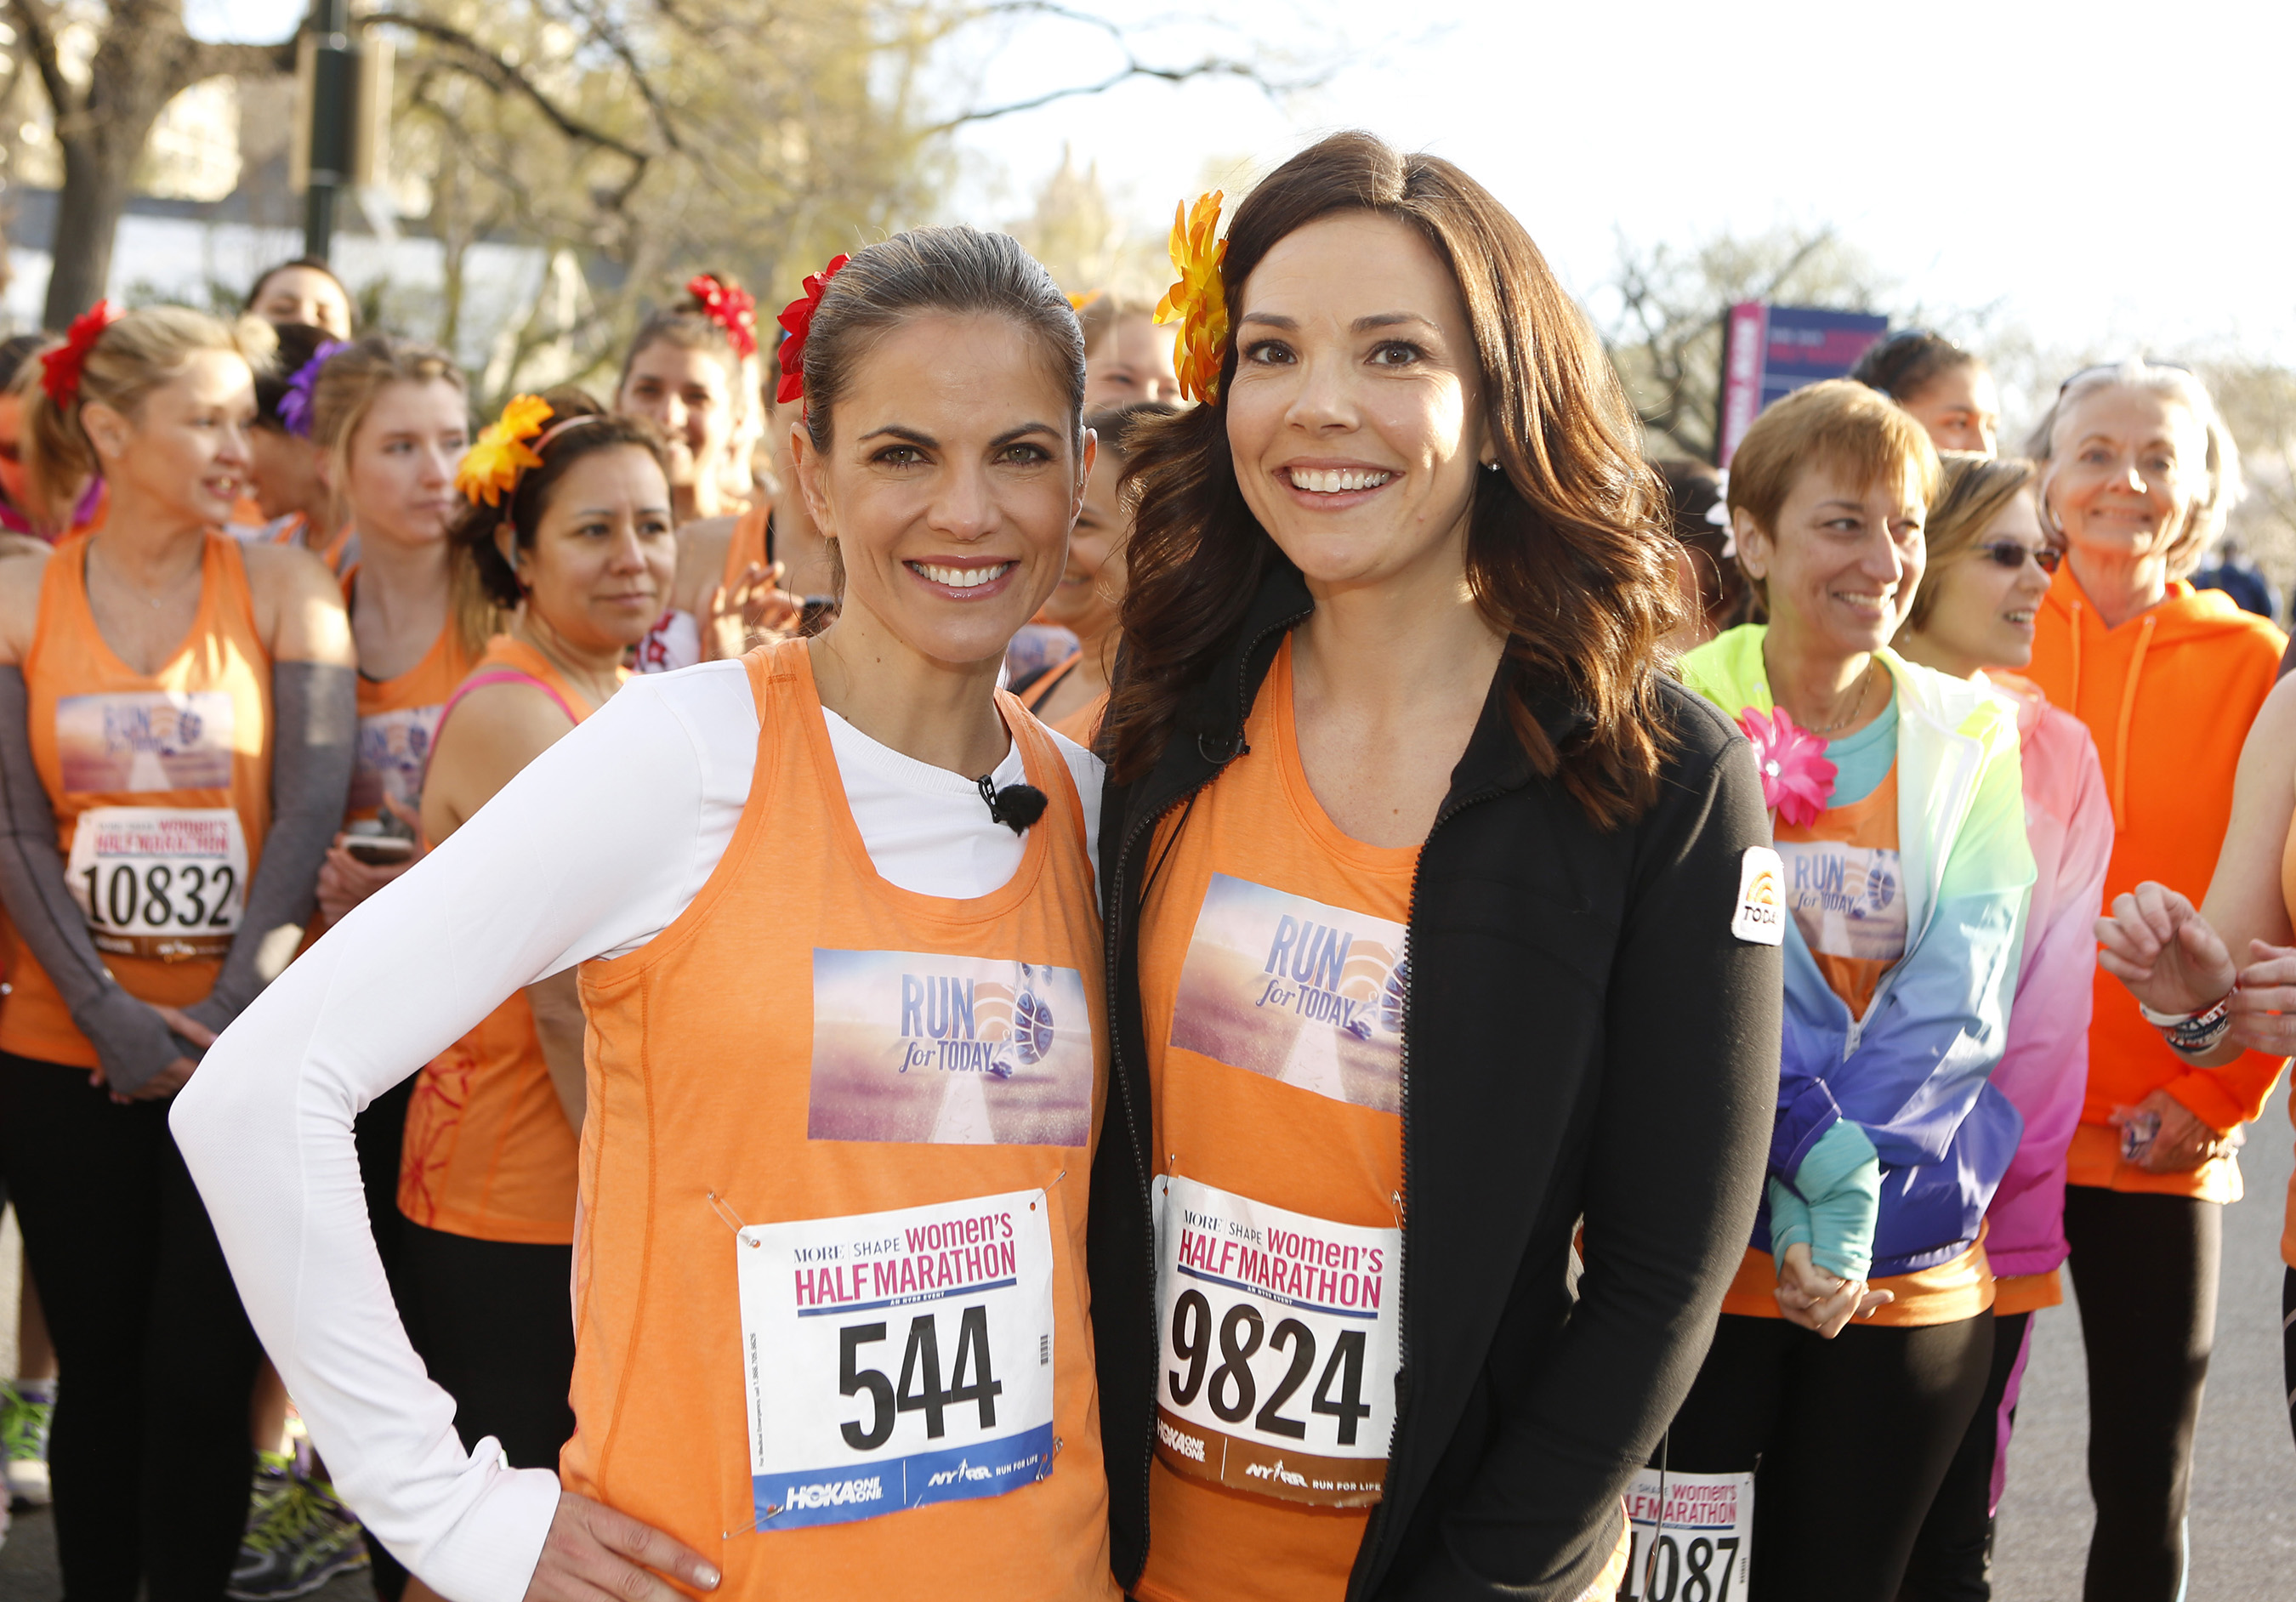 Natalie Morales of NBC's TODAY, and Erica Hill of NBC News at the 12th Annual MORE/SHAPE Women's Half-Marathon in New York's Central Park on April 19, 2015.